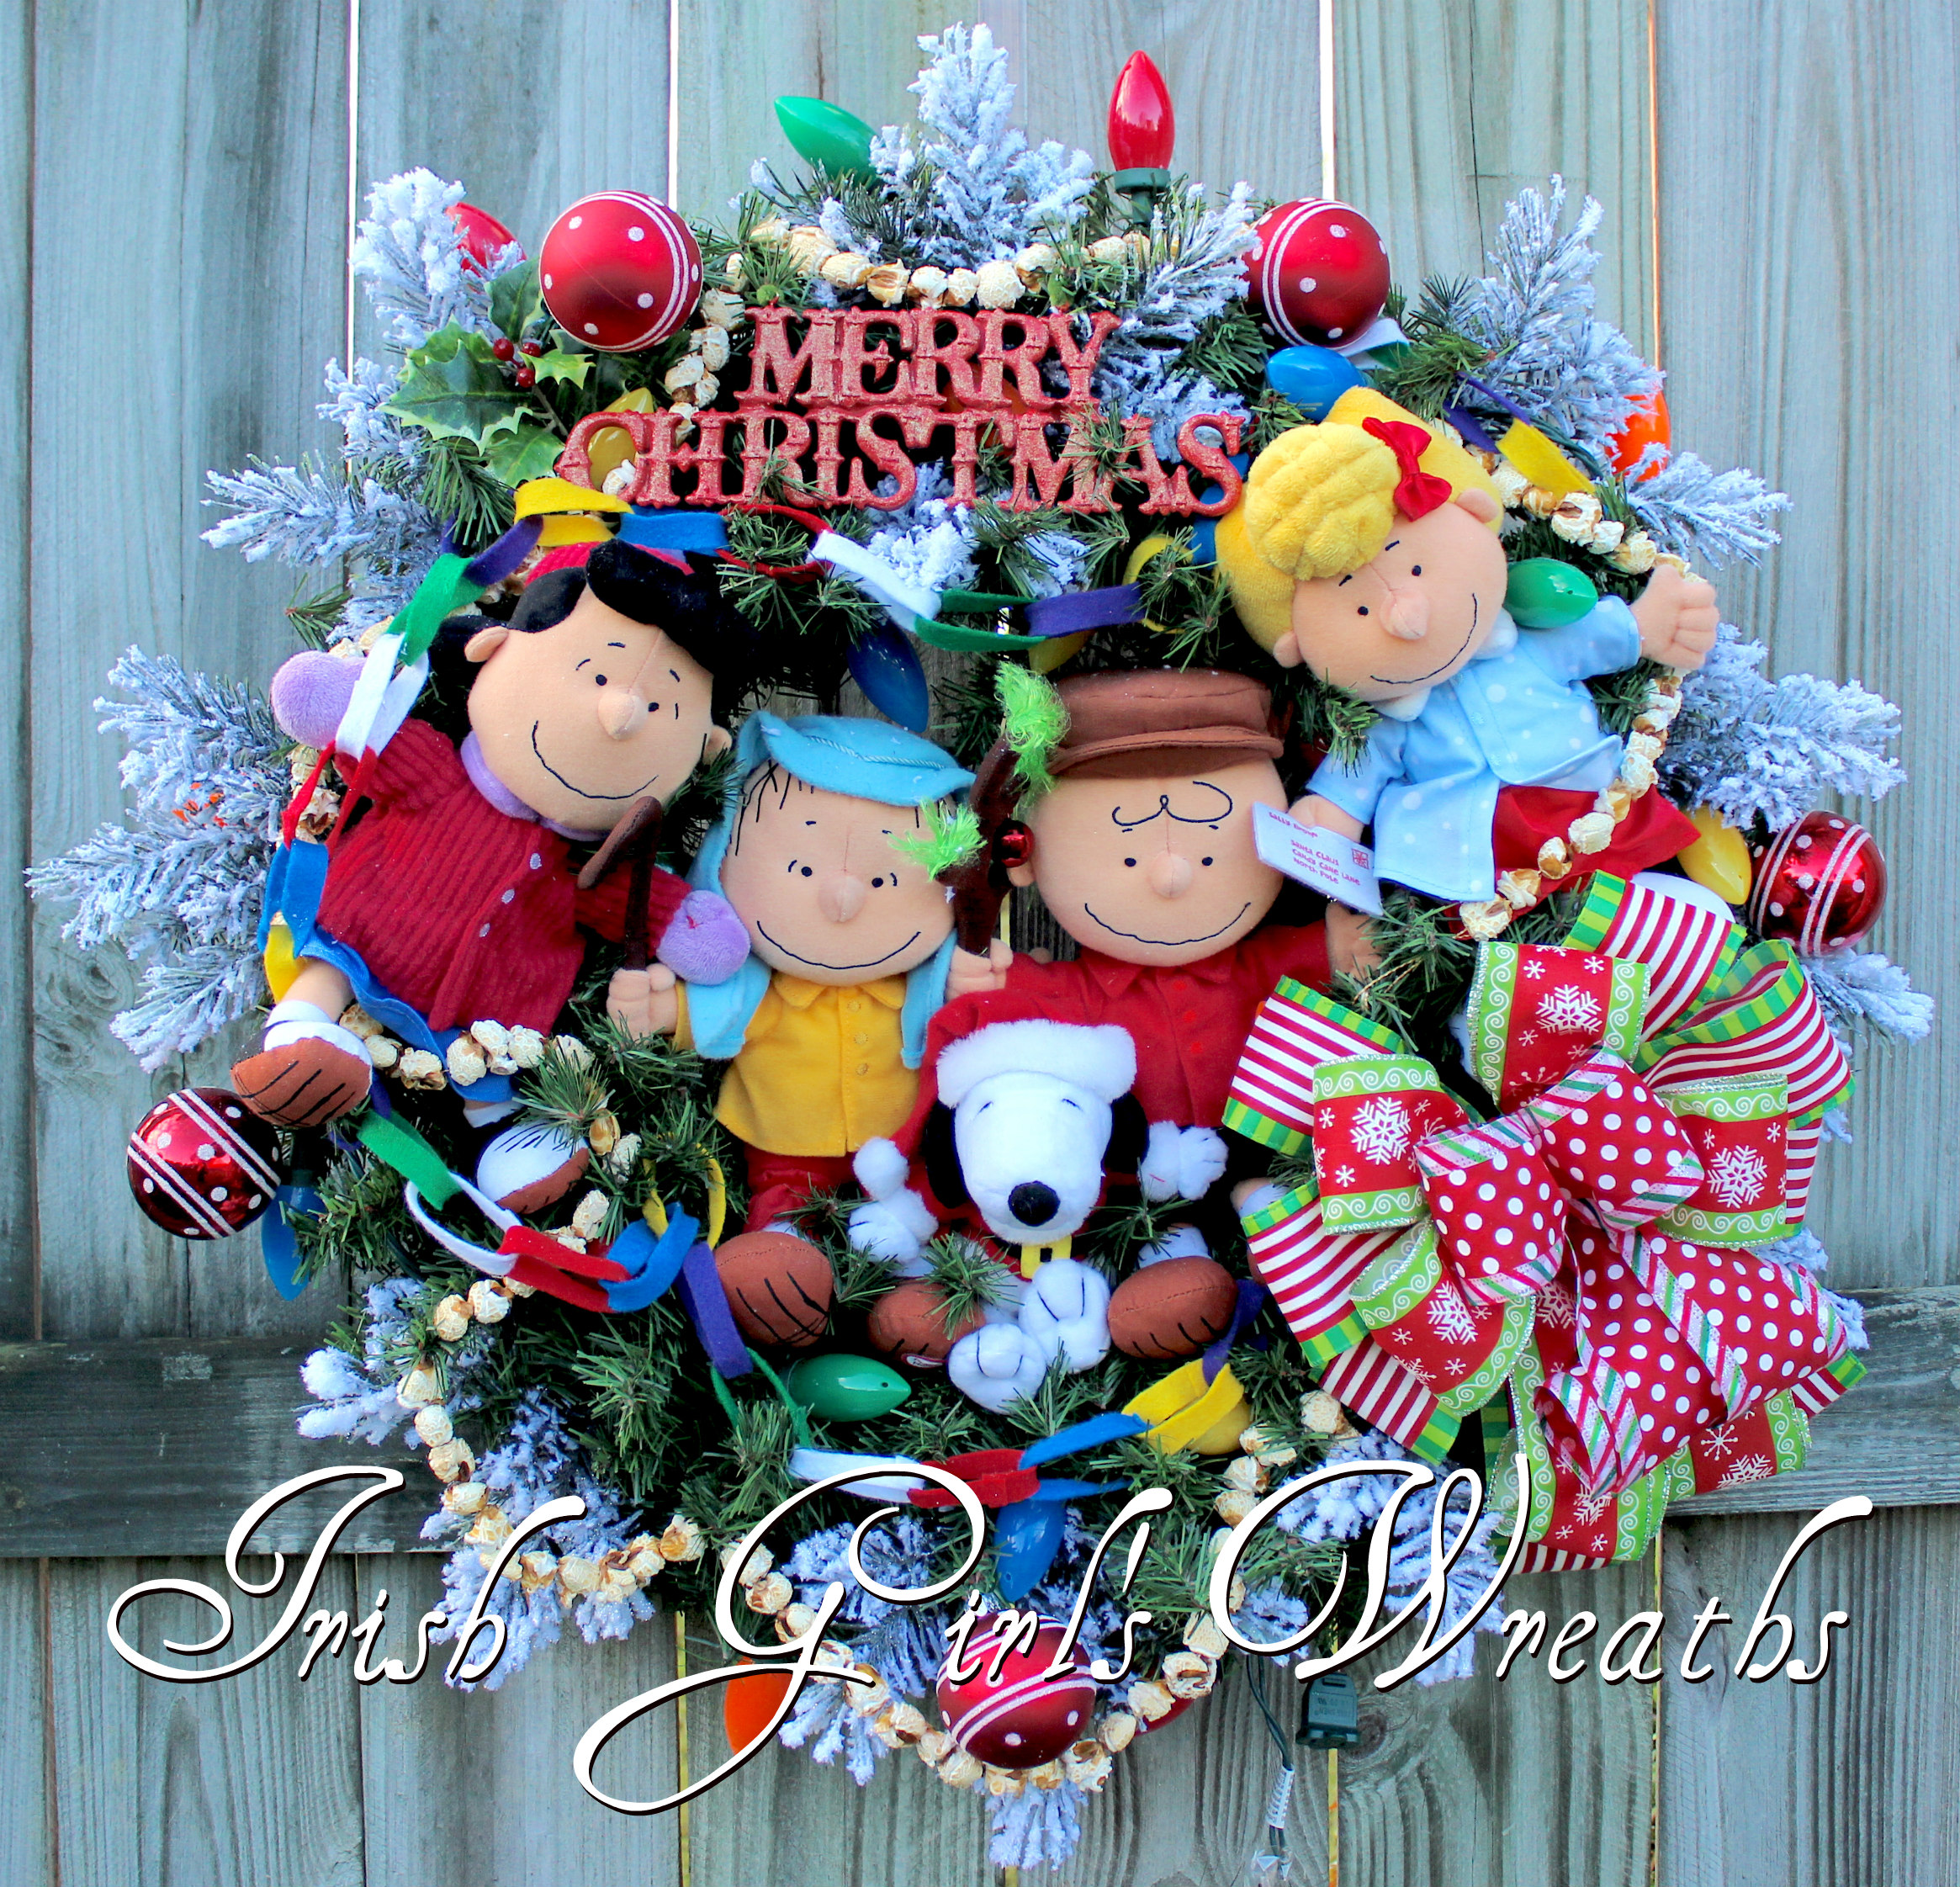 Deluxe Charlie Brown Christmas Wreath, Peanuts Gang Christmas Wreath with lights, Shepherd Linus, Lucy, Snoopy, Sally